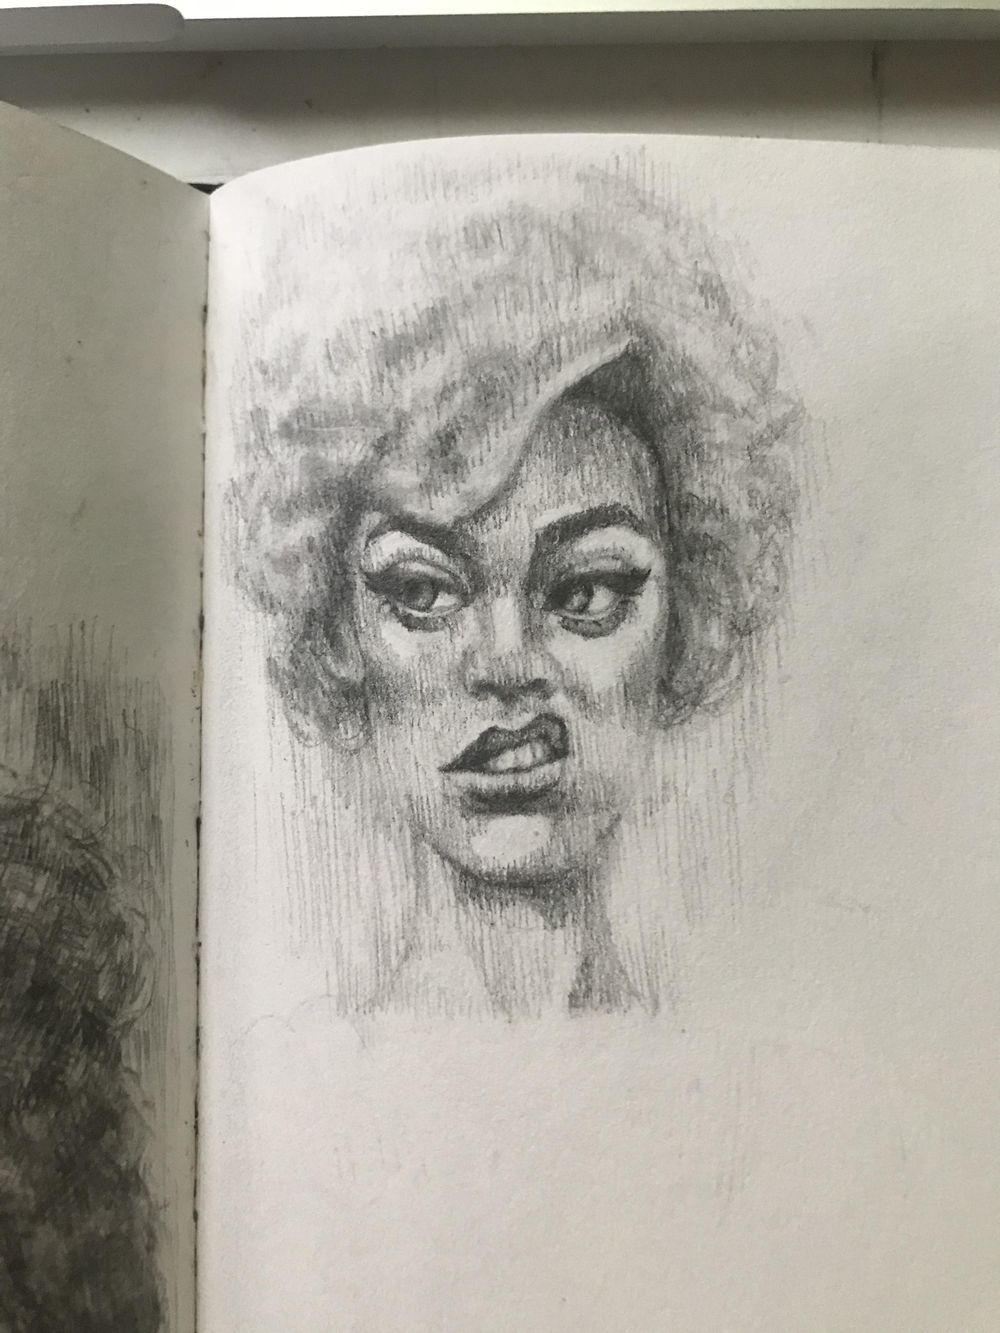 portrait drawings! - image 1 - student project